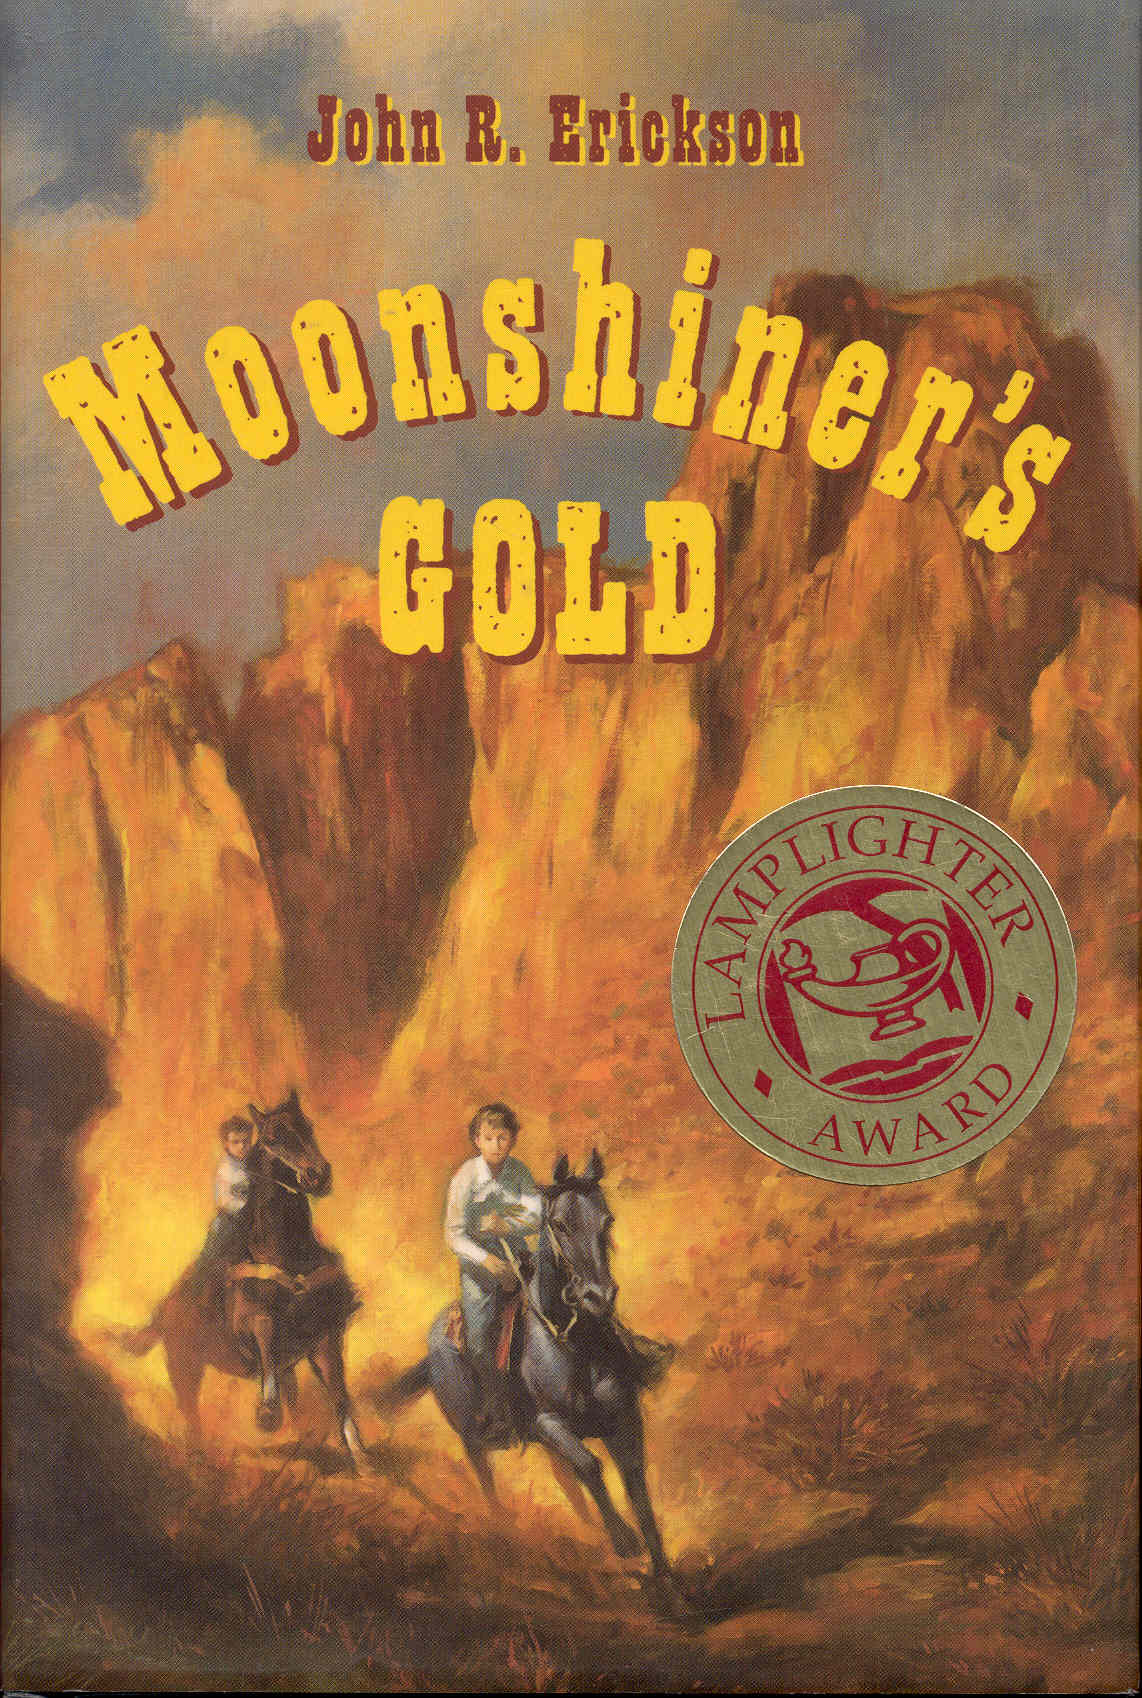 Image for Moonshiner's Gold